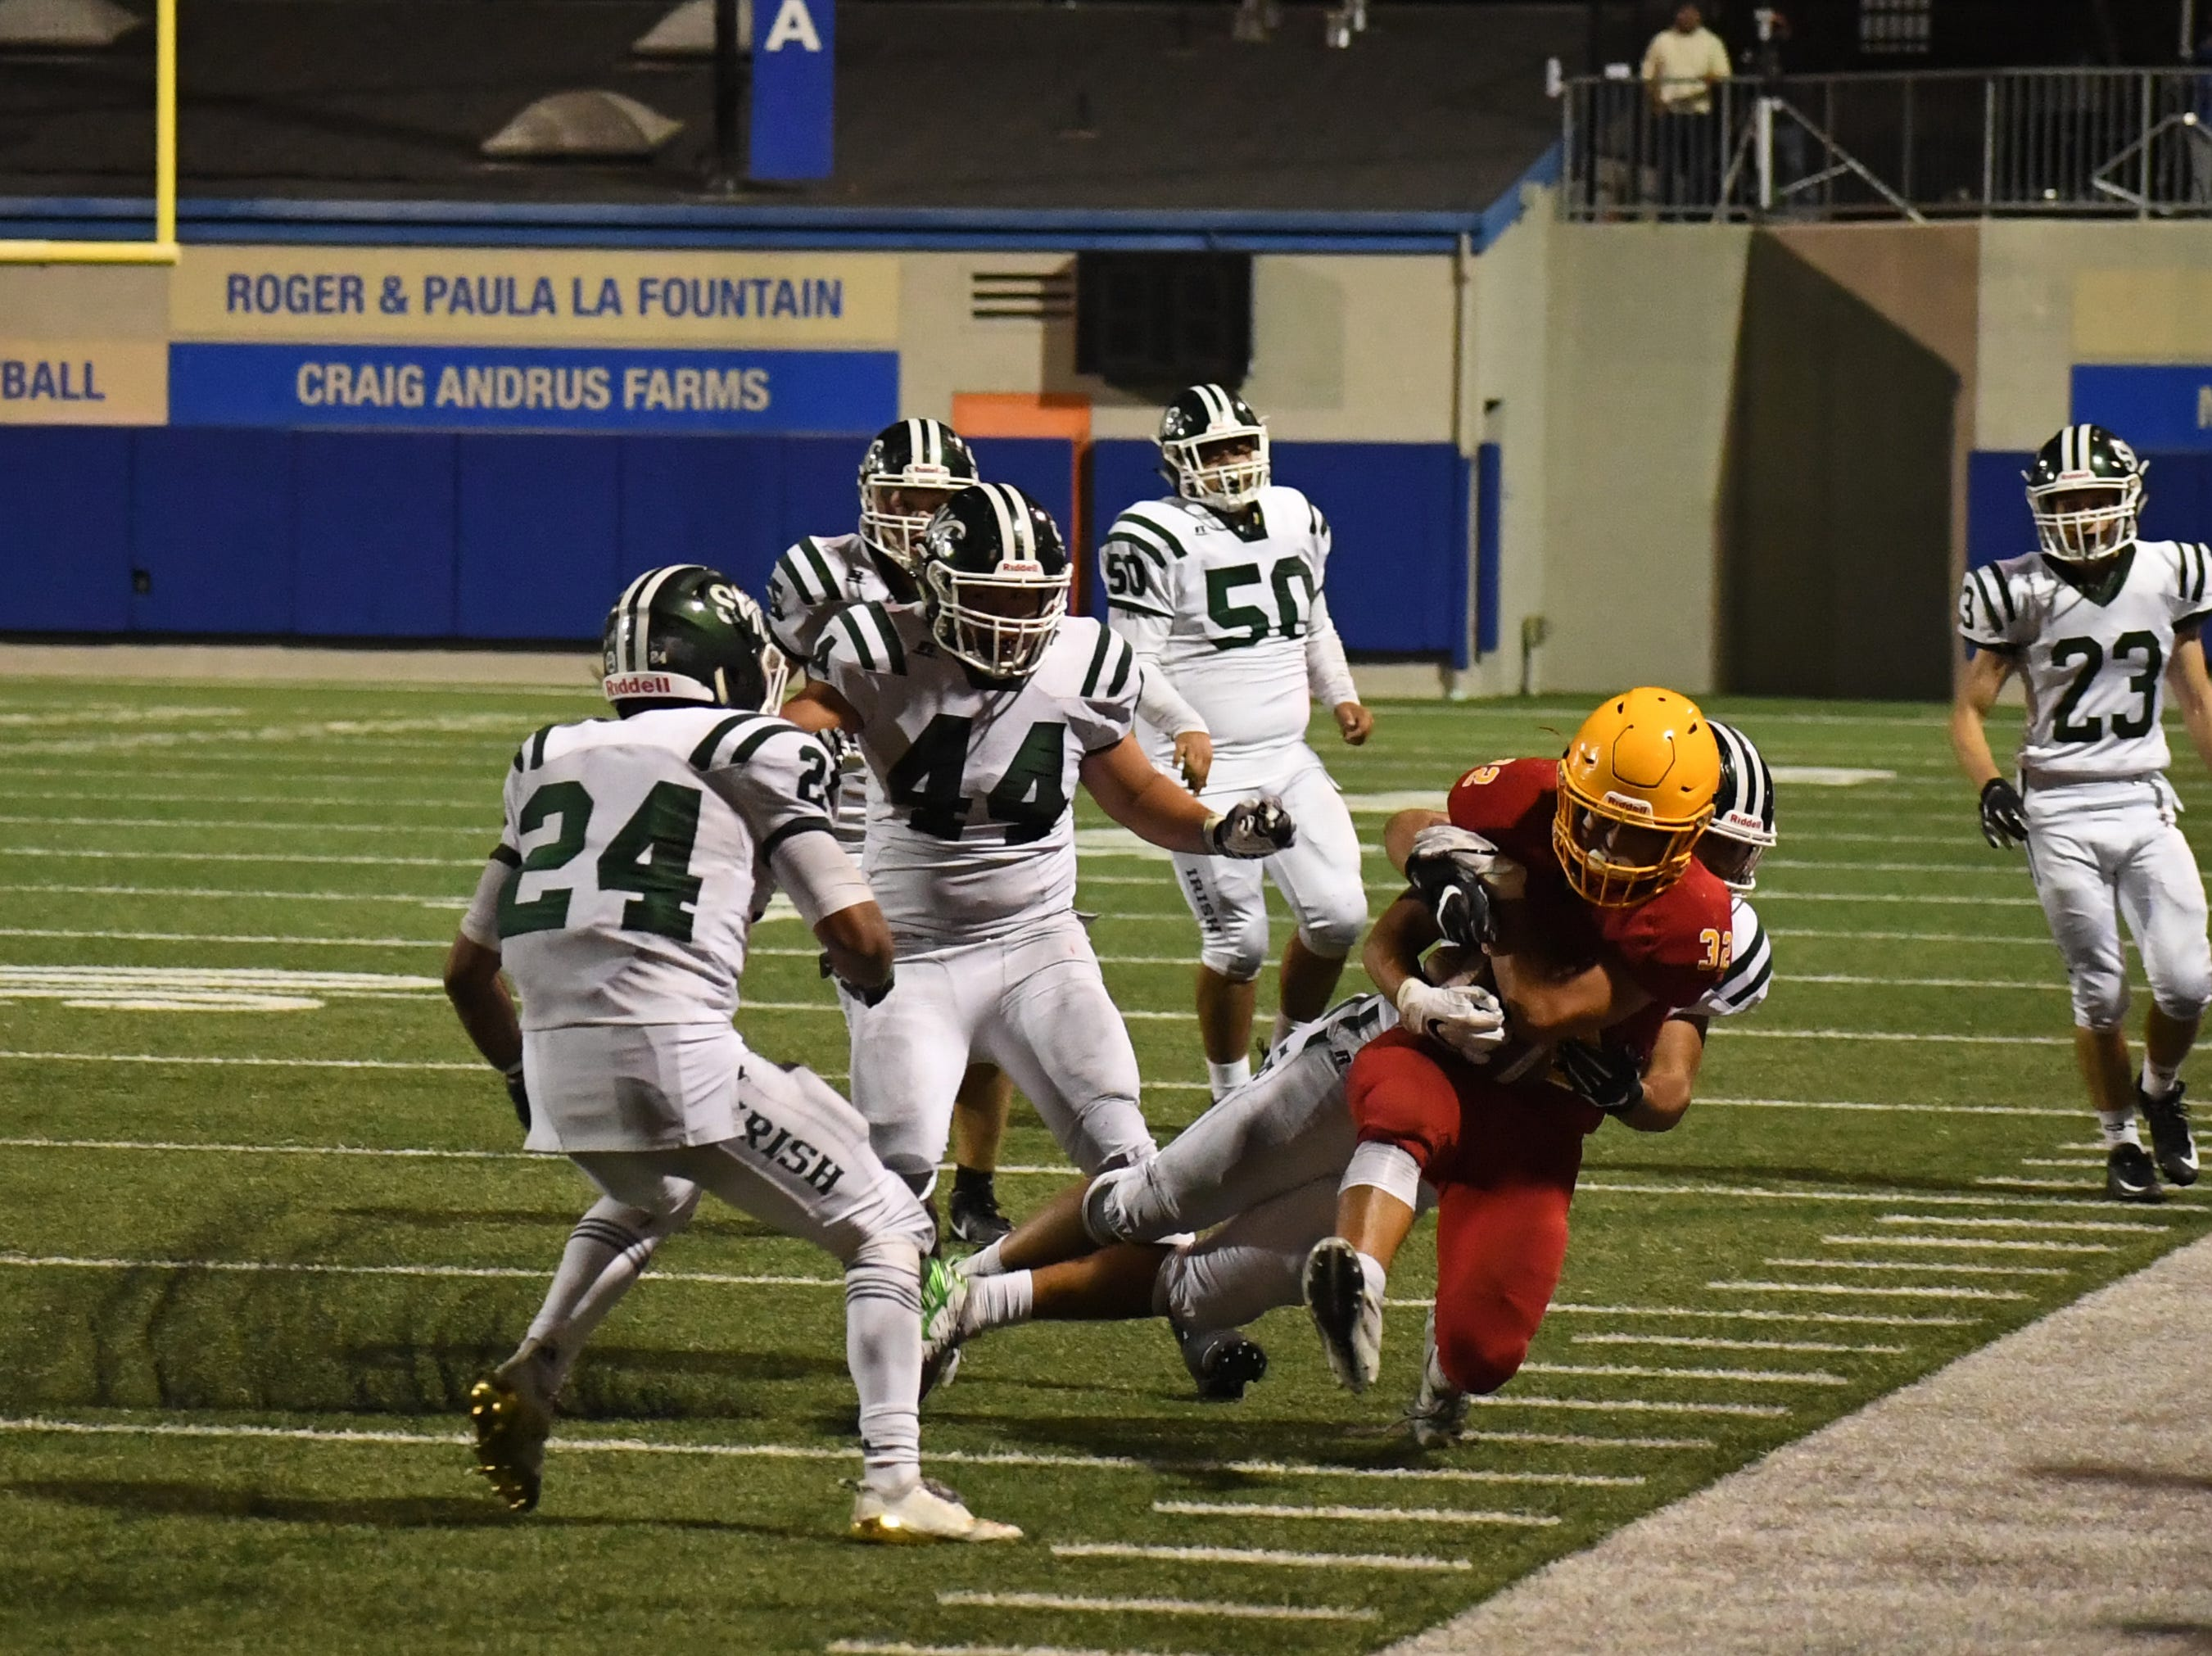 Palma senior Diego Guajardo (32) is tackled along the visitors' sideline in the fourth quarter.